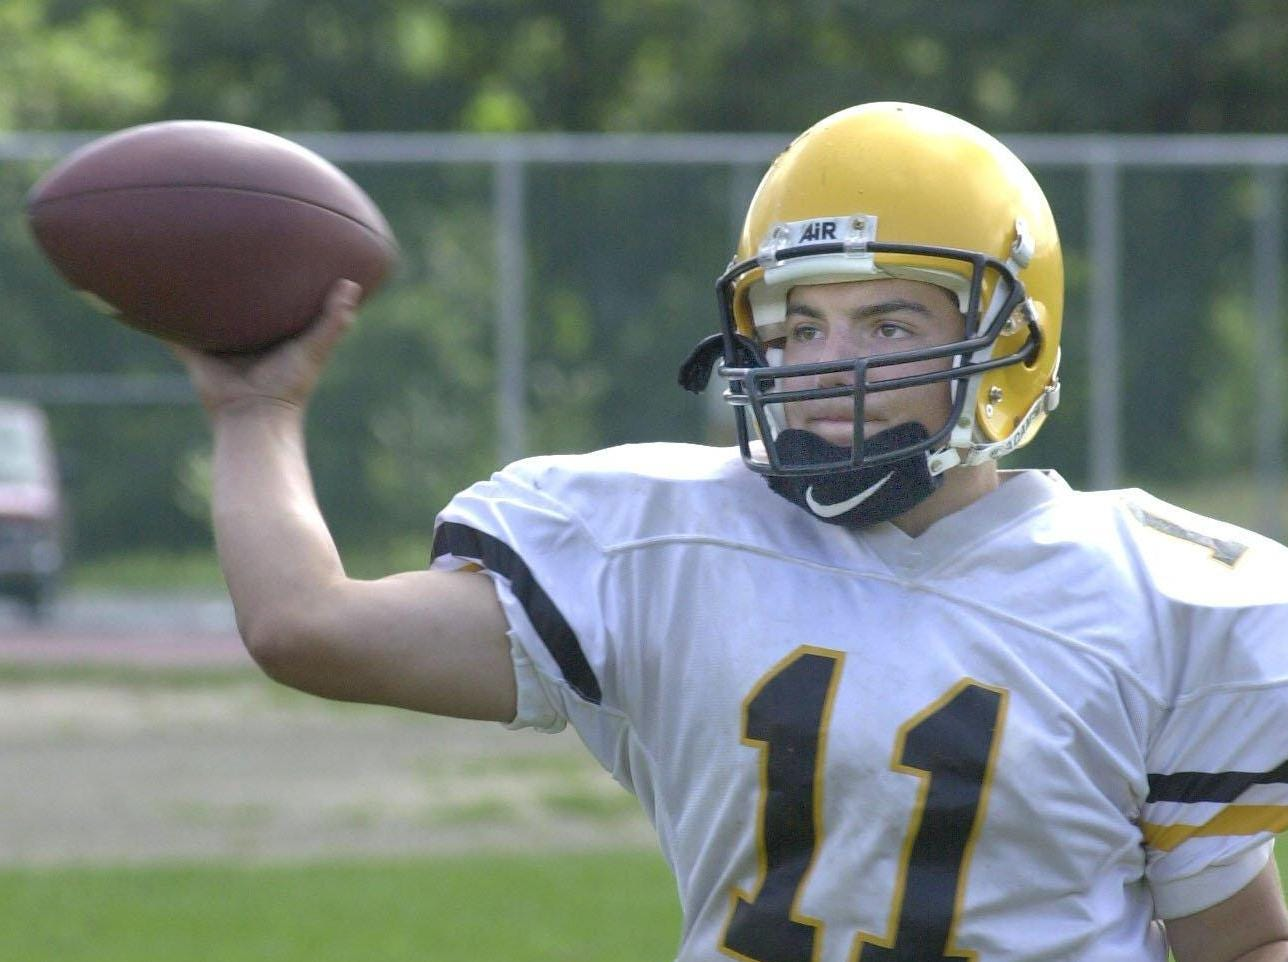 From 1999: Windsor's Paul Suhadolnik looks for a receiver during passing practice.